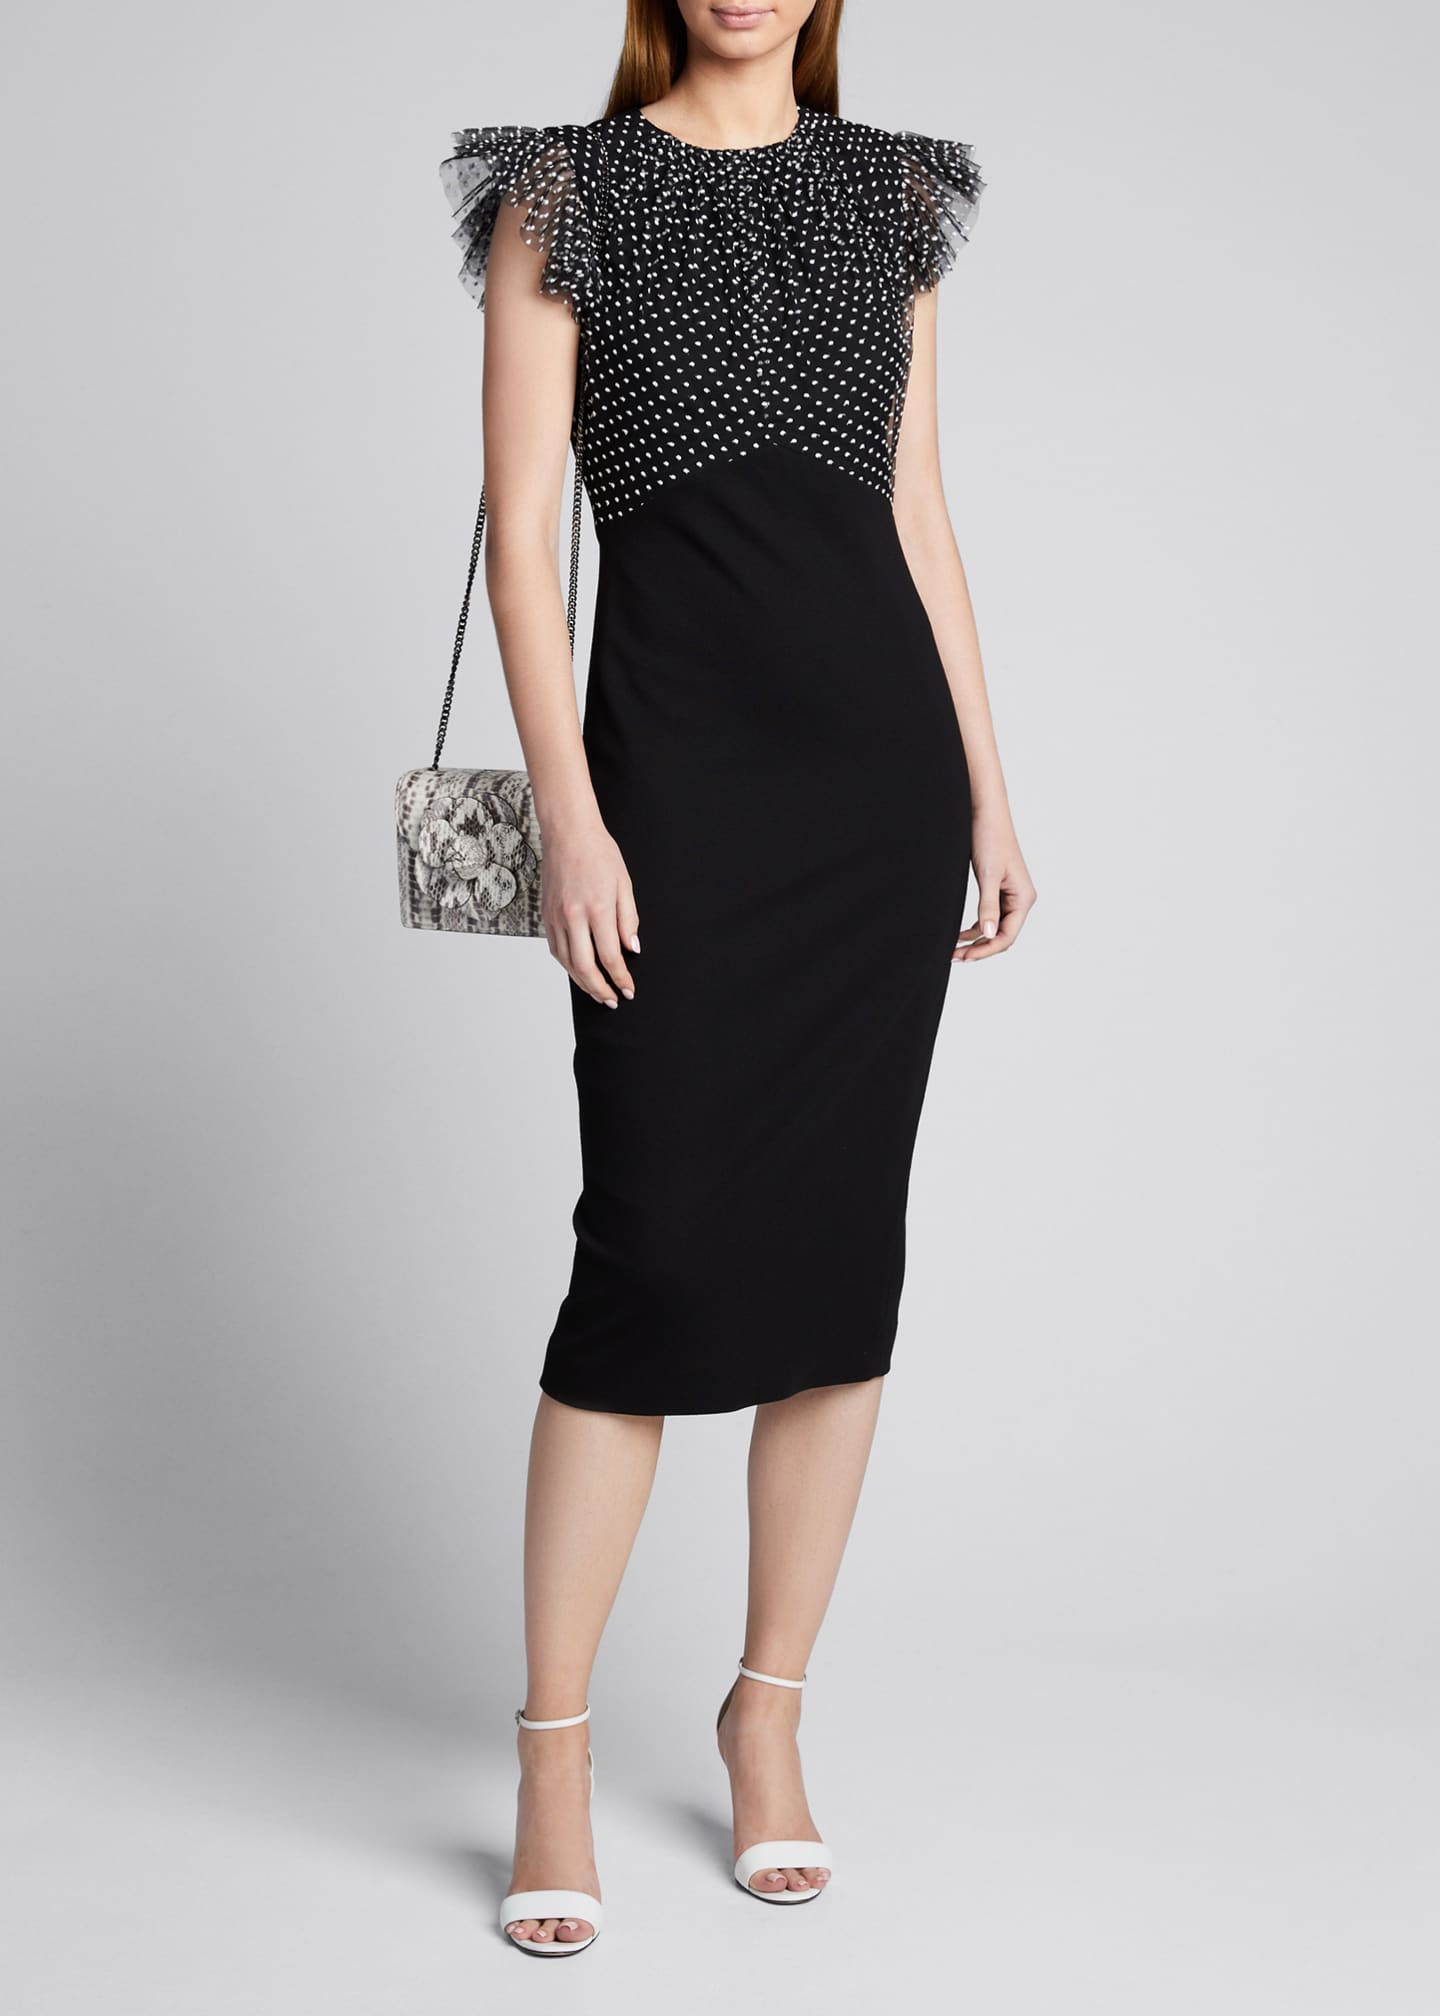 Jason Wu Collection Ruched Polka-Dot Lace Stretch Ponte